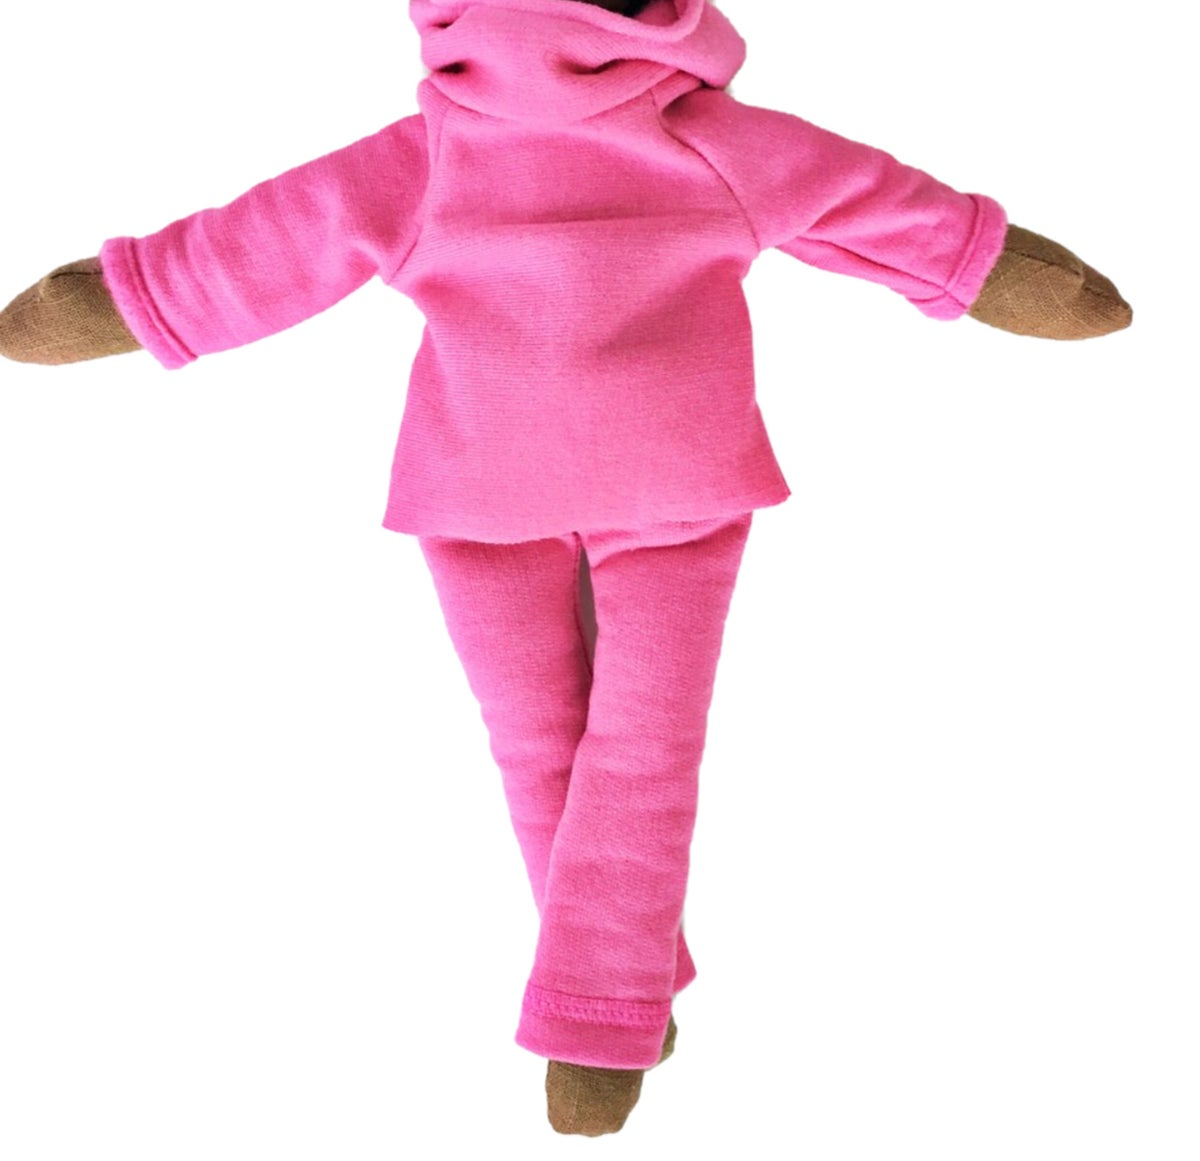 Pink sweats w| hoody - 2pc Doll Accessory (PLEASE NOTE: THIS ORDER WILL SHIP ON OR BEFORE NOV 30TH)